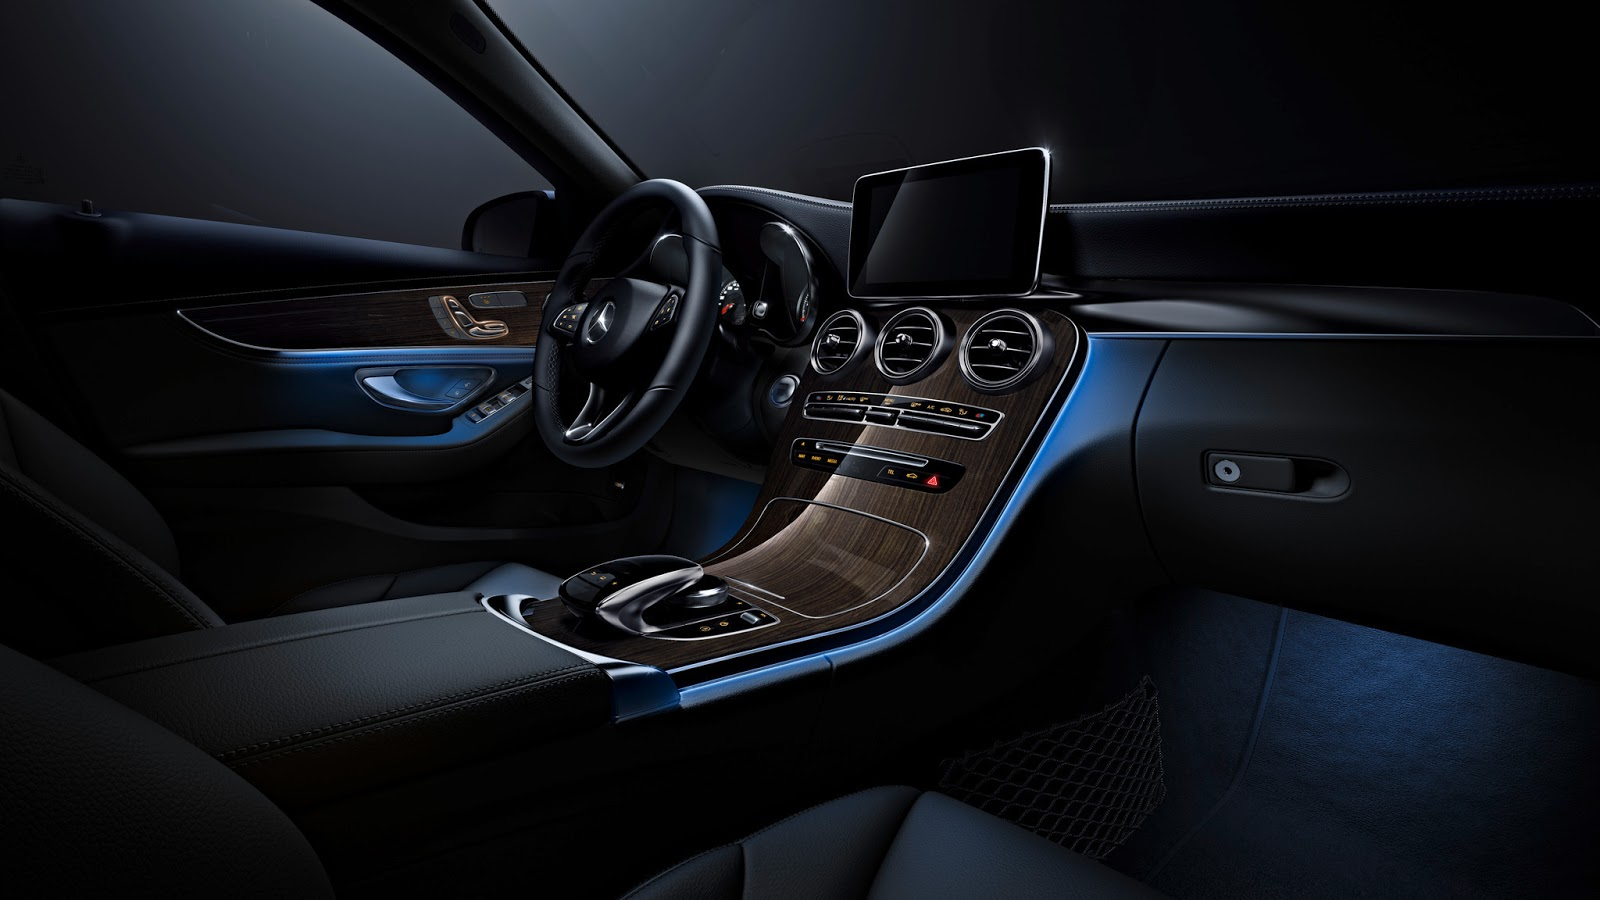 Mercedes Benz C Class Receives S Class Inspired Ambient